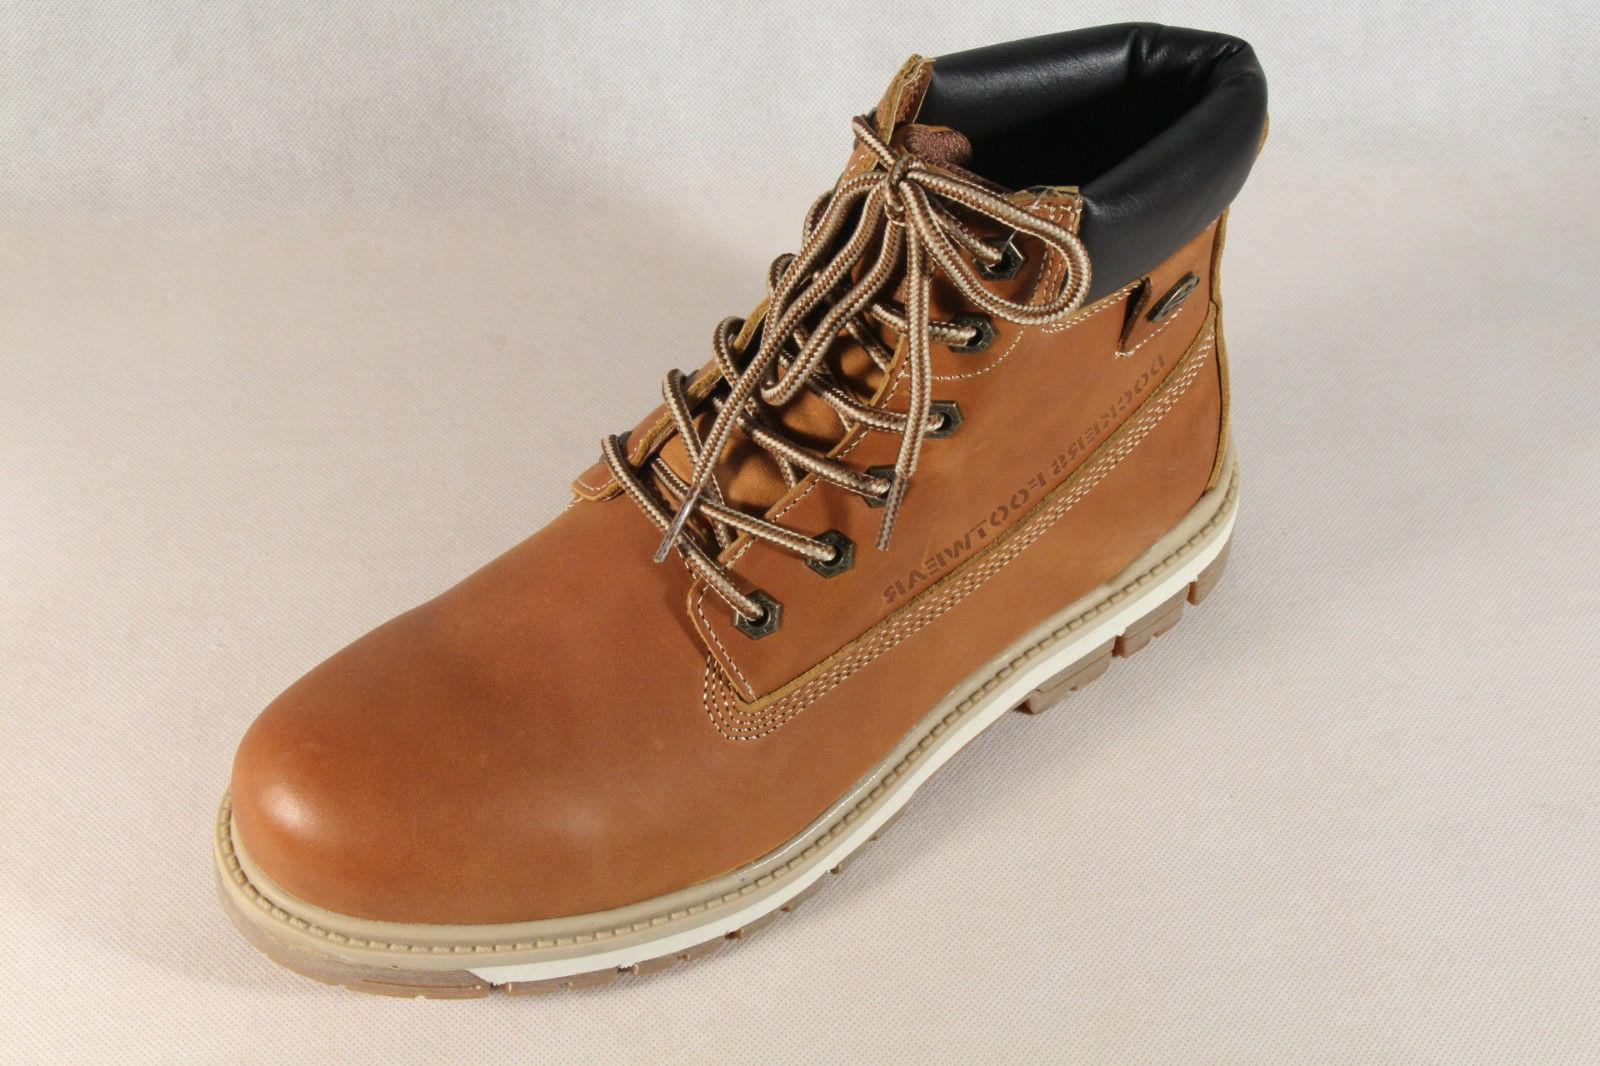 Dockers Boots Leather New